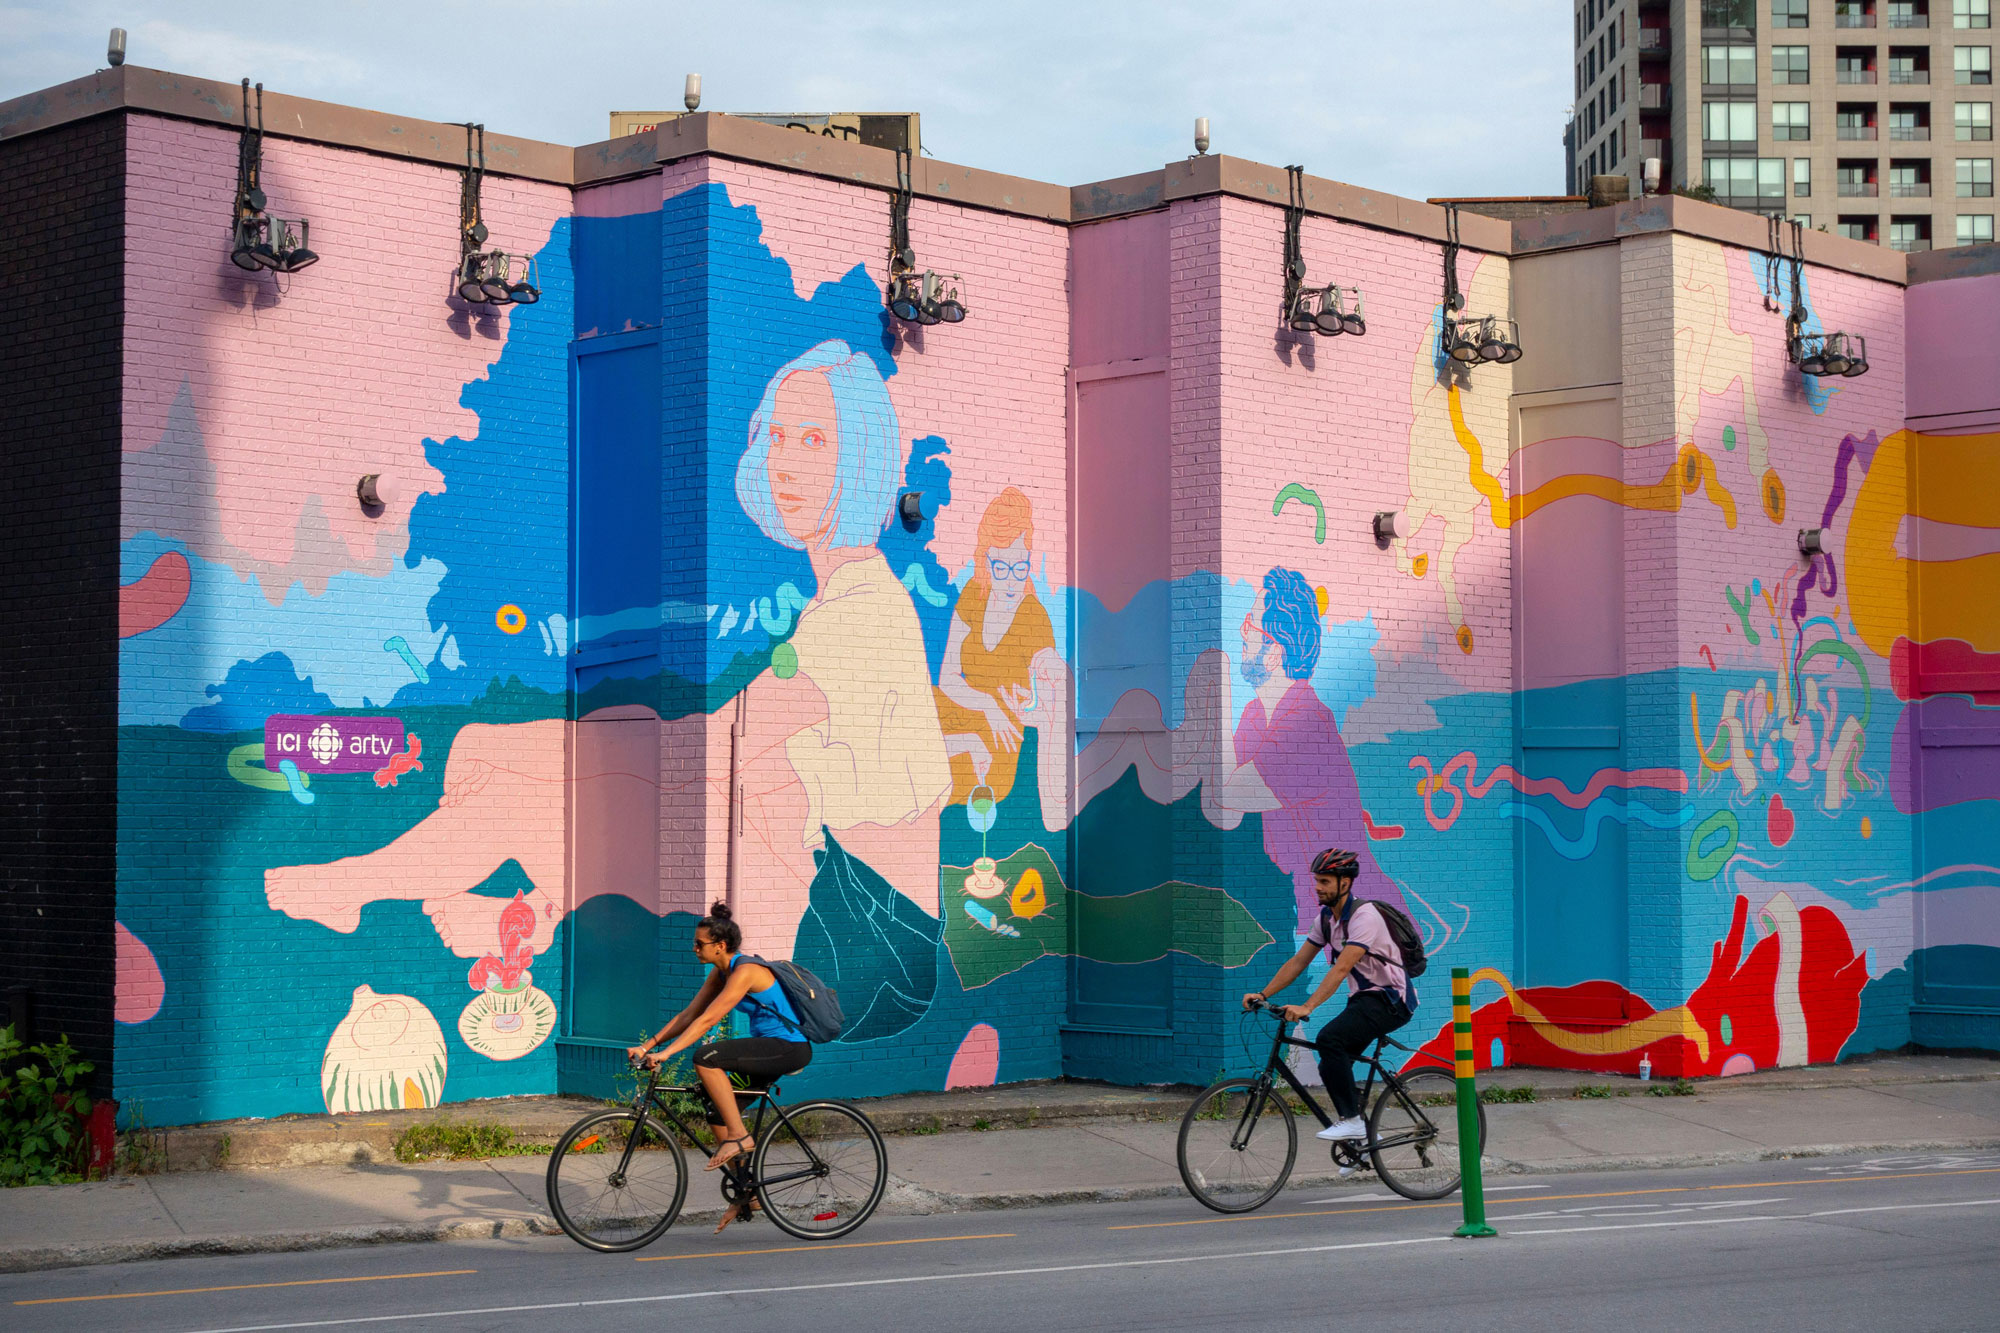 Marc O'Brien of Doras Creative, during Montreal's Mural Festival, 2018 Photo: Renault Philippe/Alamy